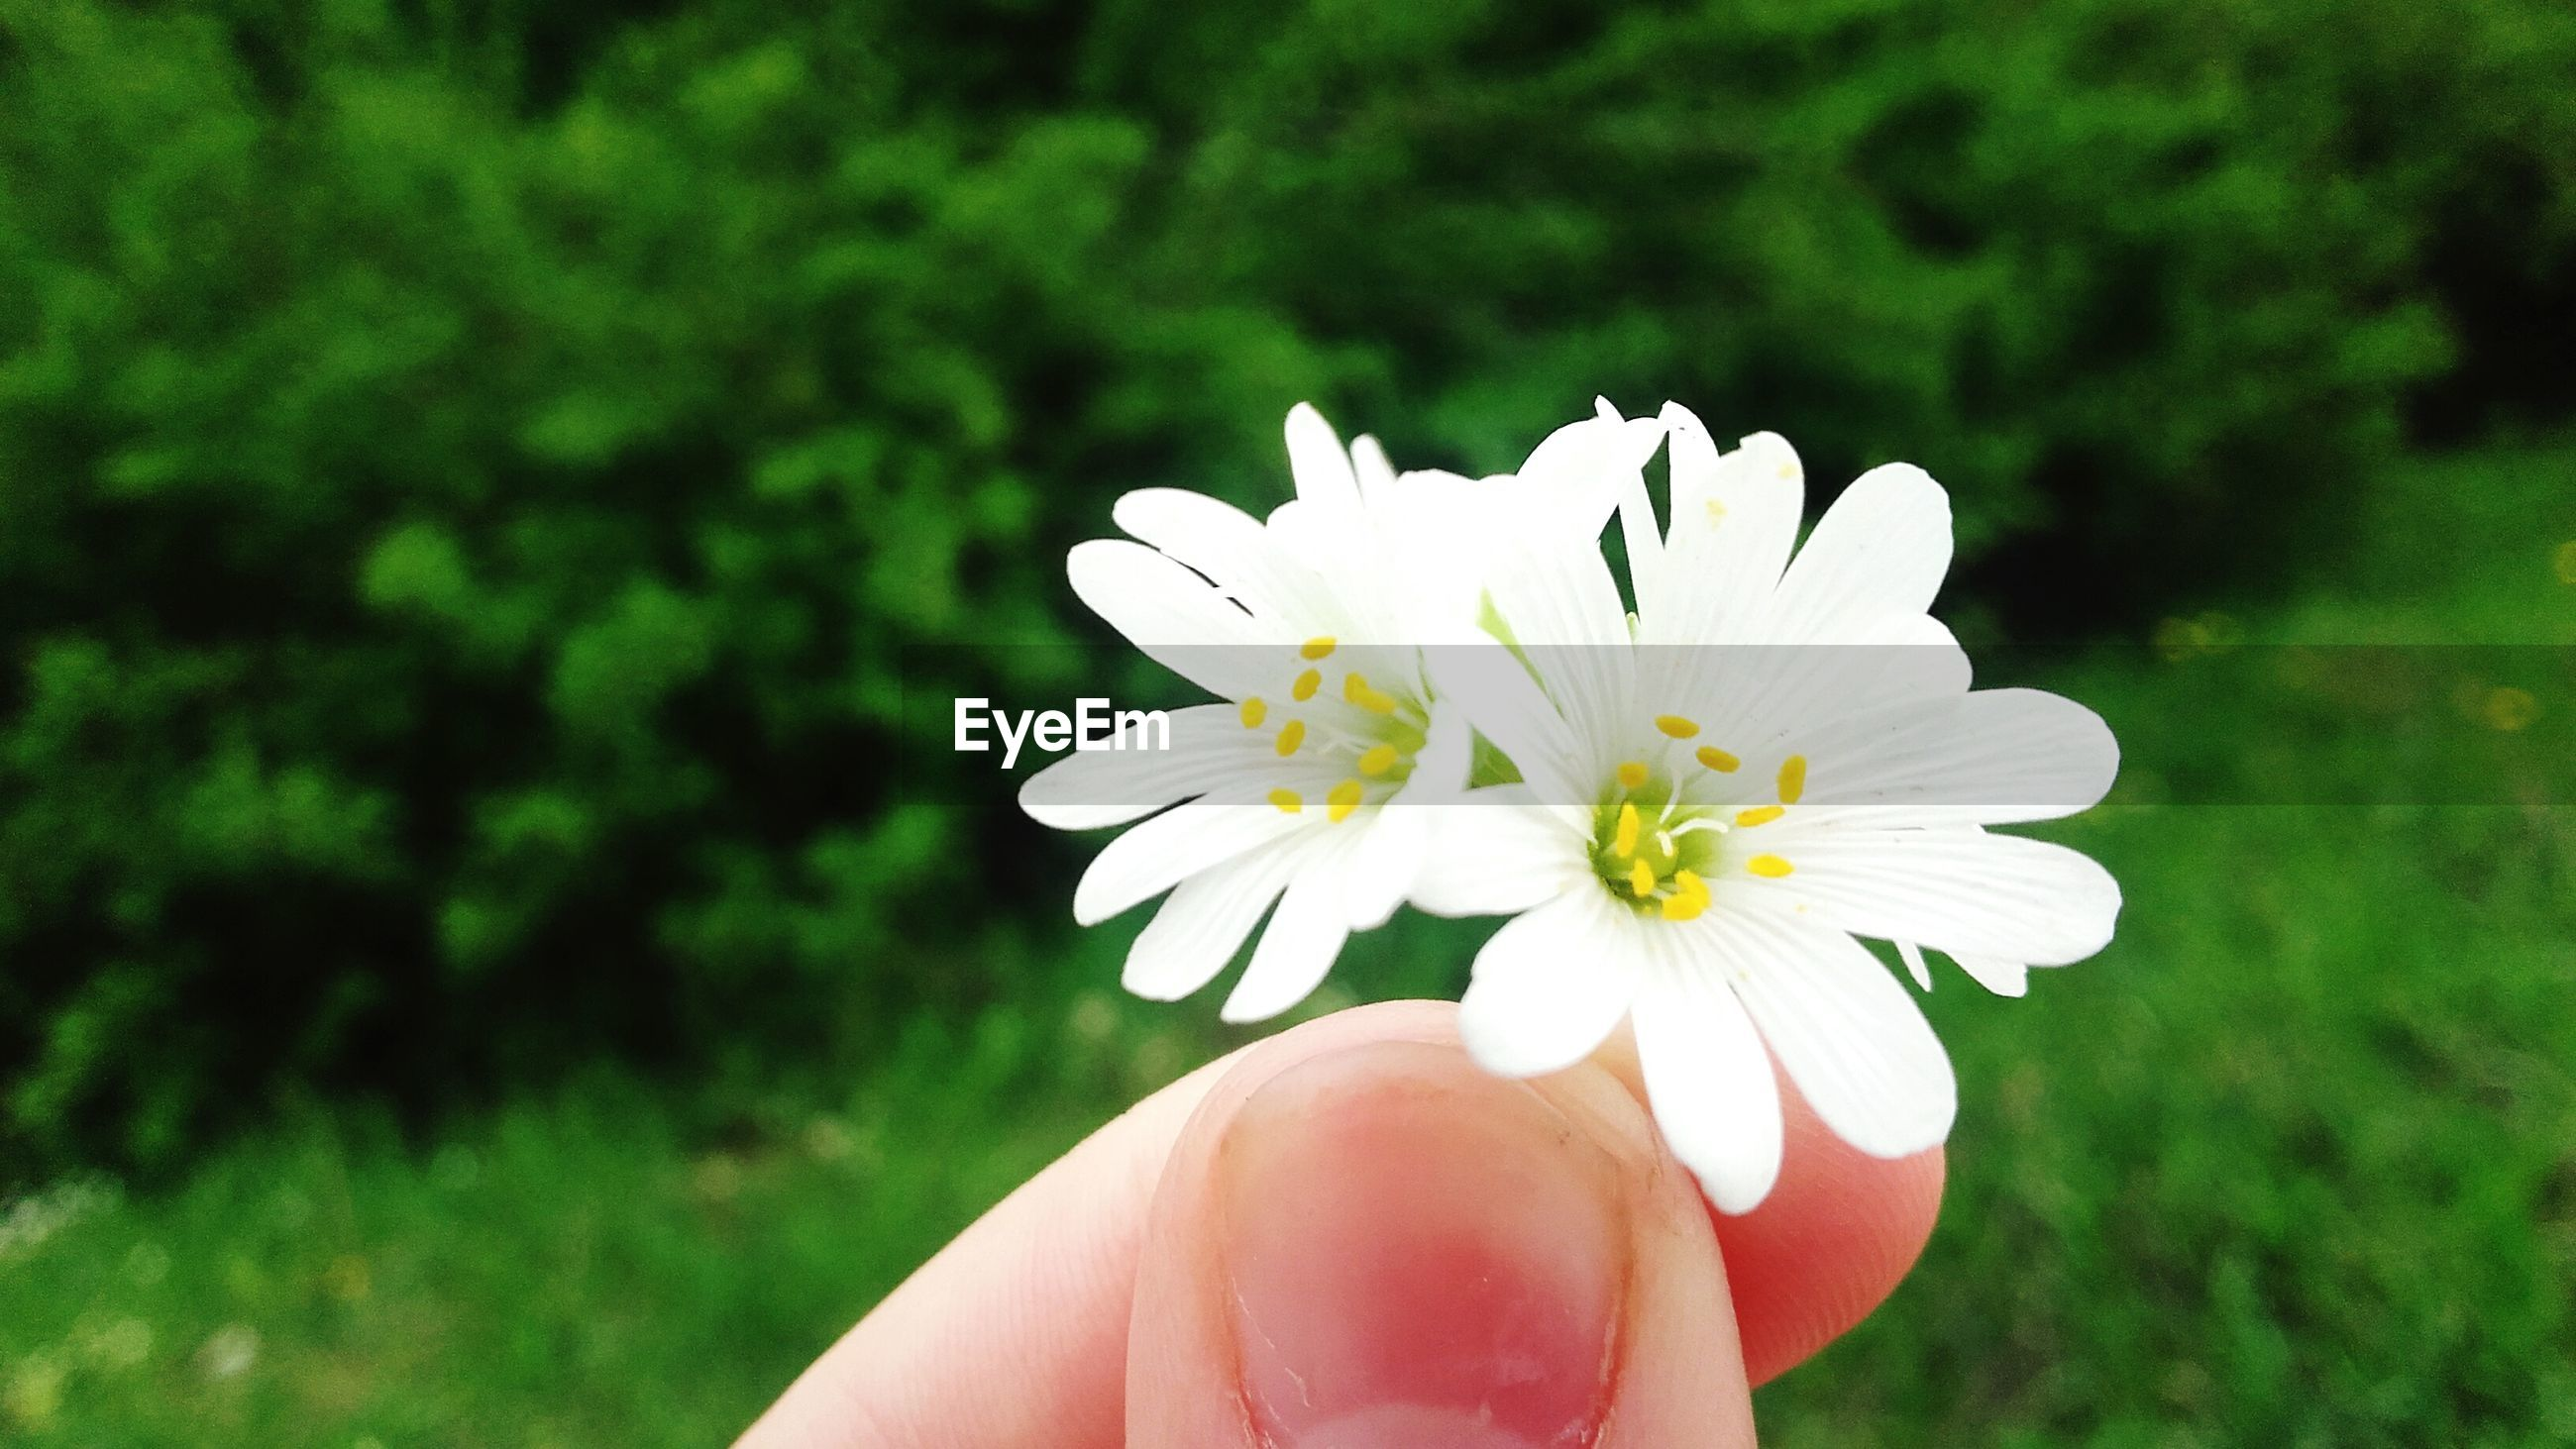 person, flower, holding, focus on foreground, white color, part of, human finger, fragility, petal, close-up, freshness, lifestyles, cropped, flower head, unrecognizable person, personal perspective